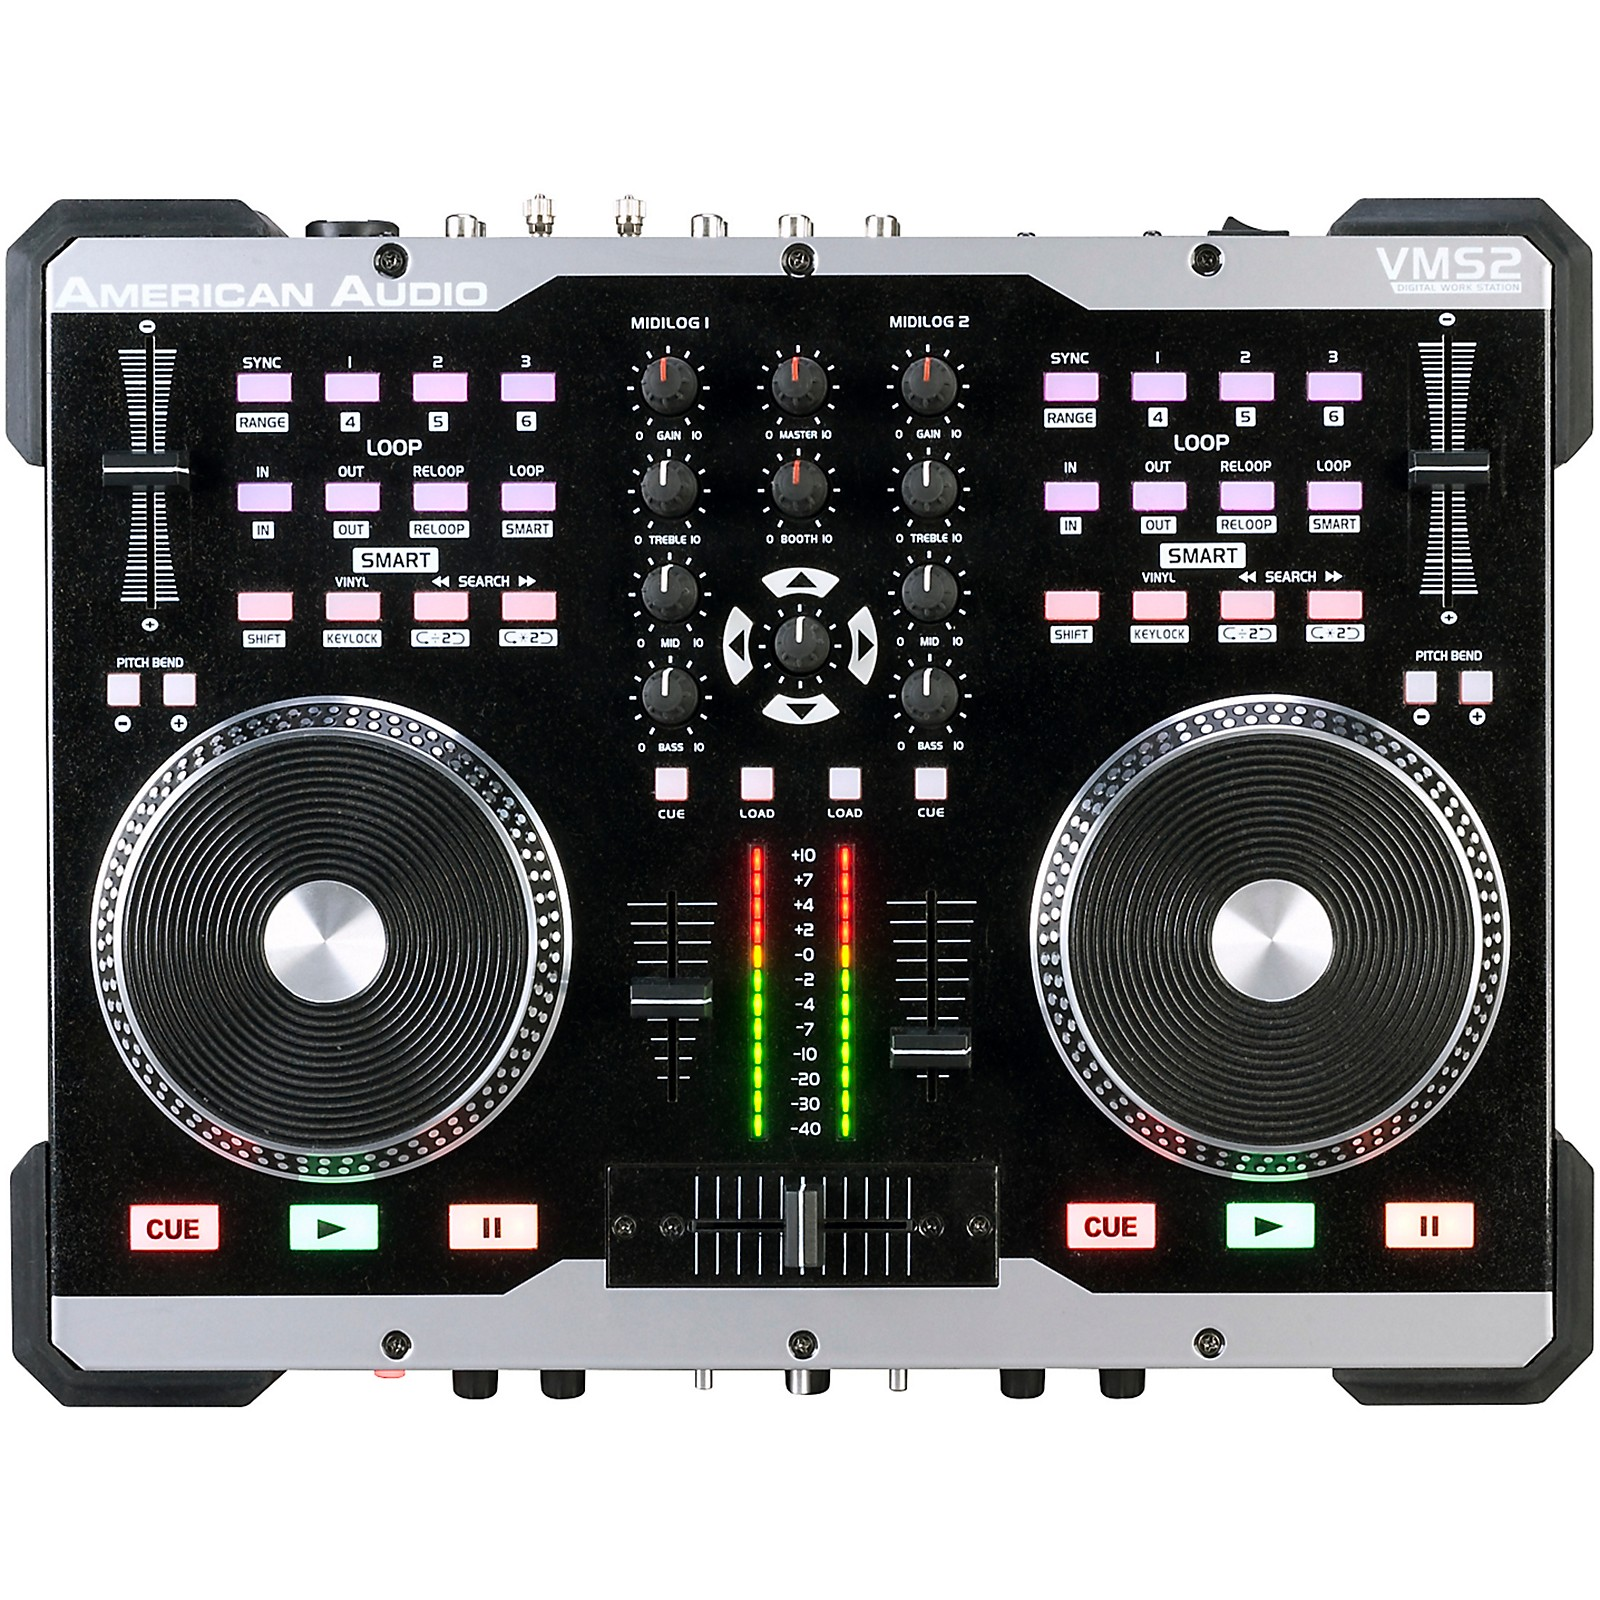 Open Box American Audio VMS2 2-Channel Compact DJ Midi Controller with Software